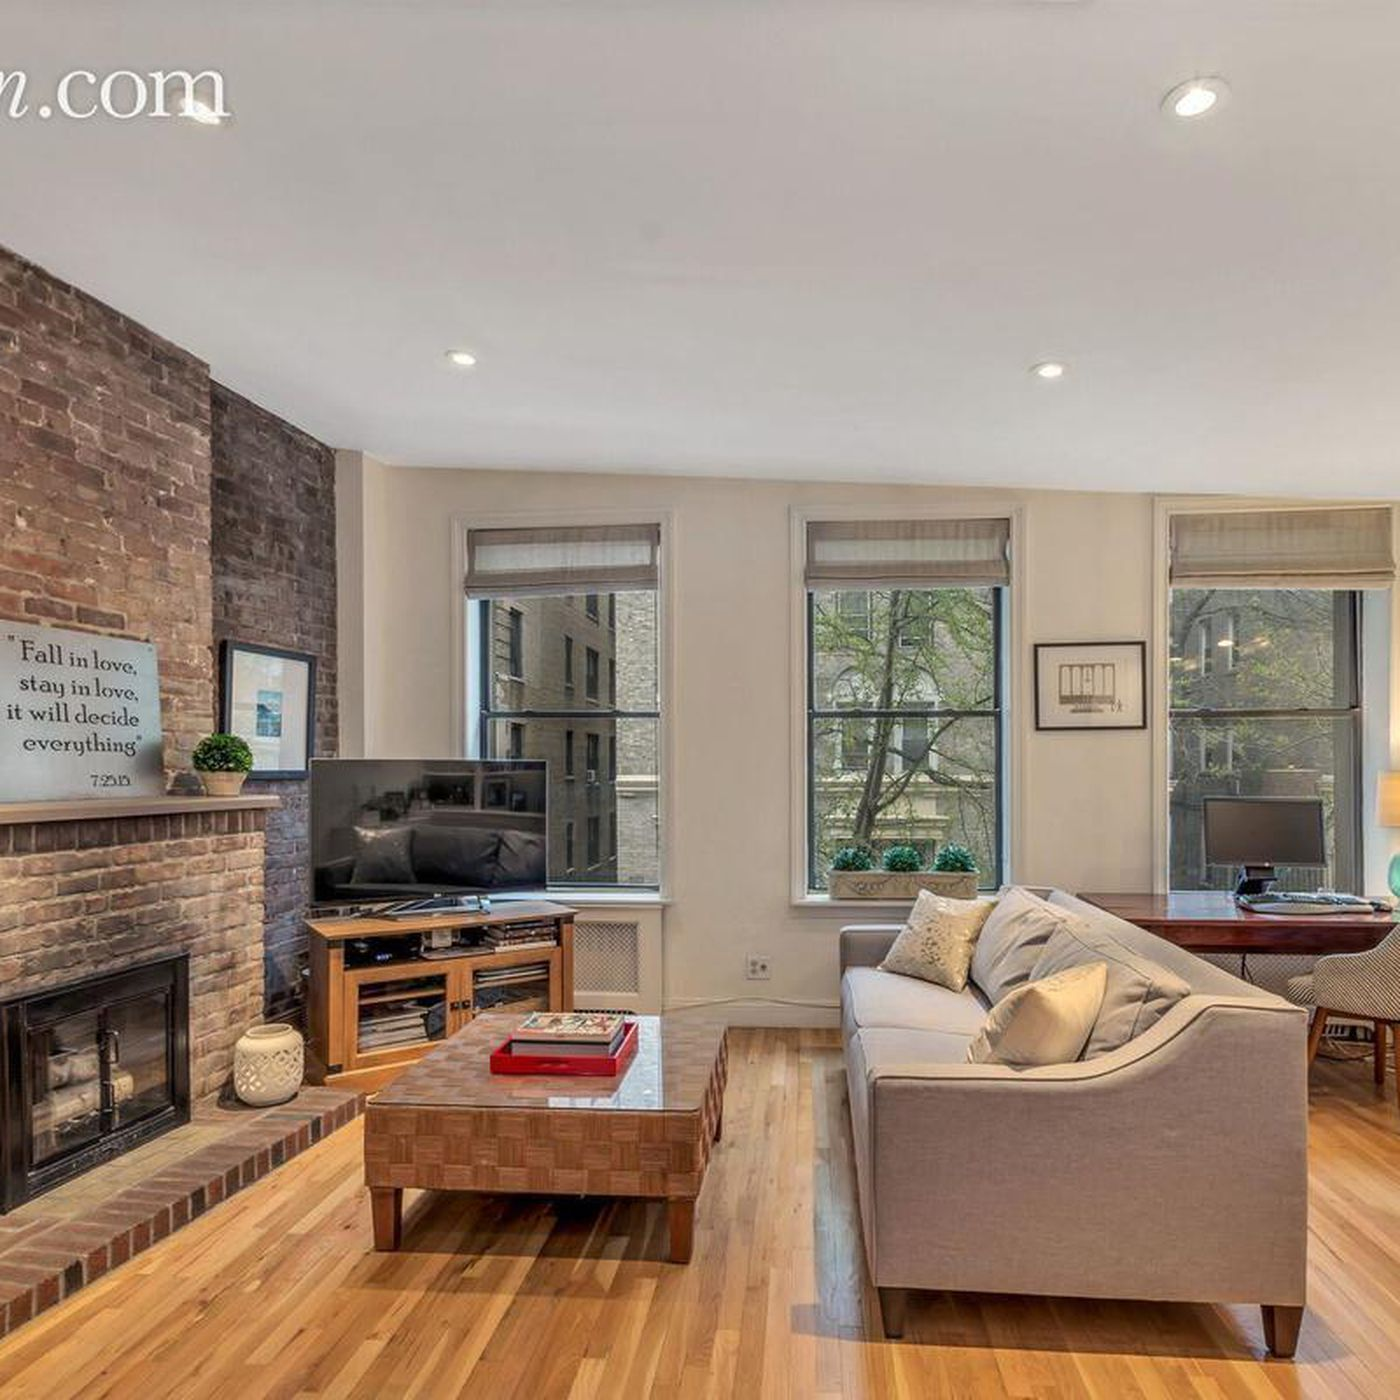 Cozy $719K Upper West Side One Bedroom Is The Epitome Of